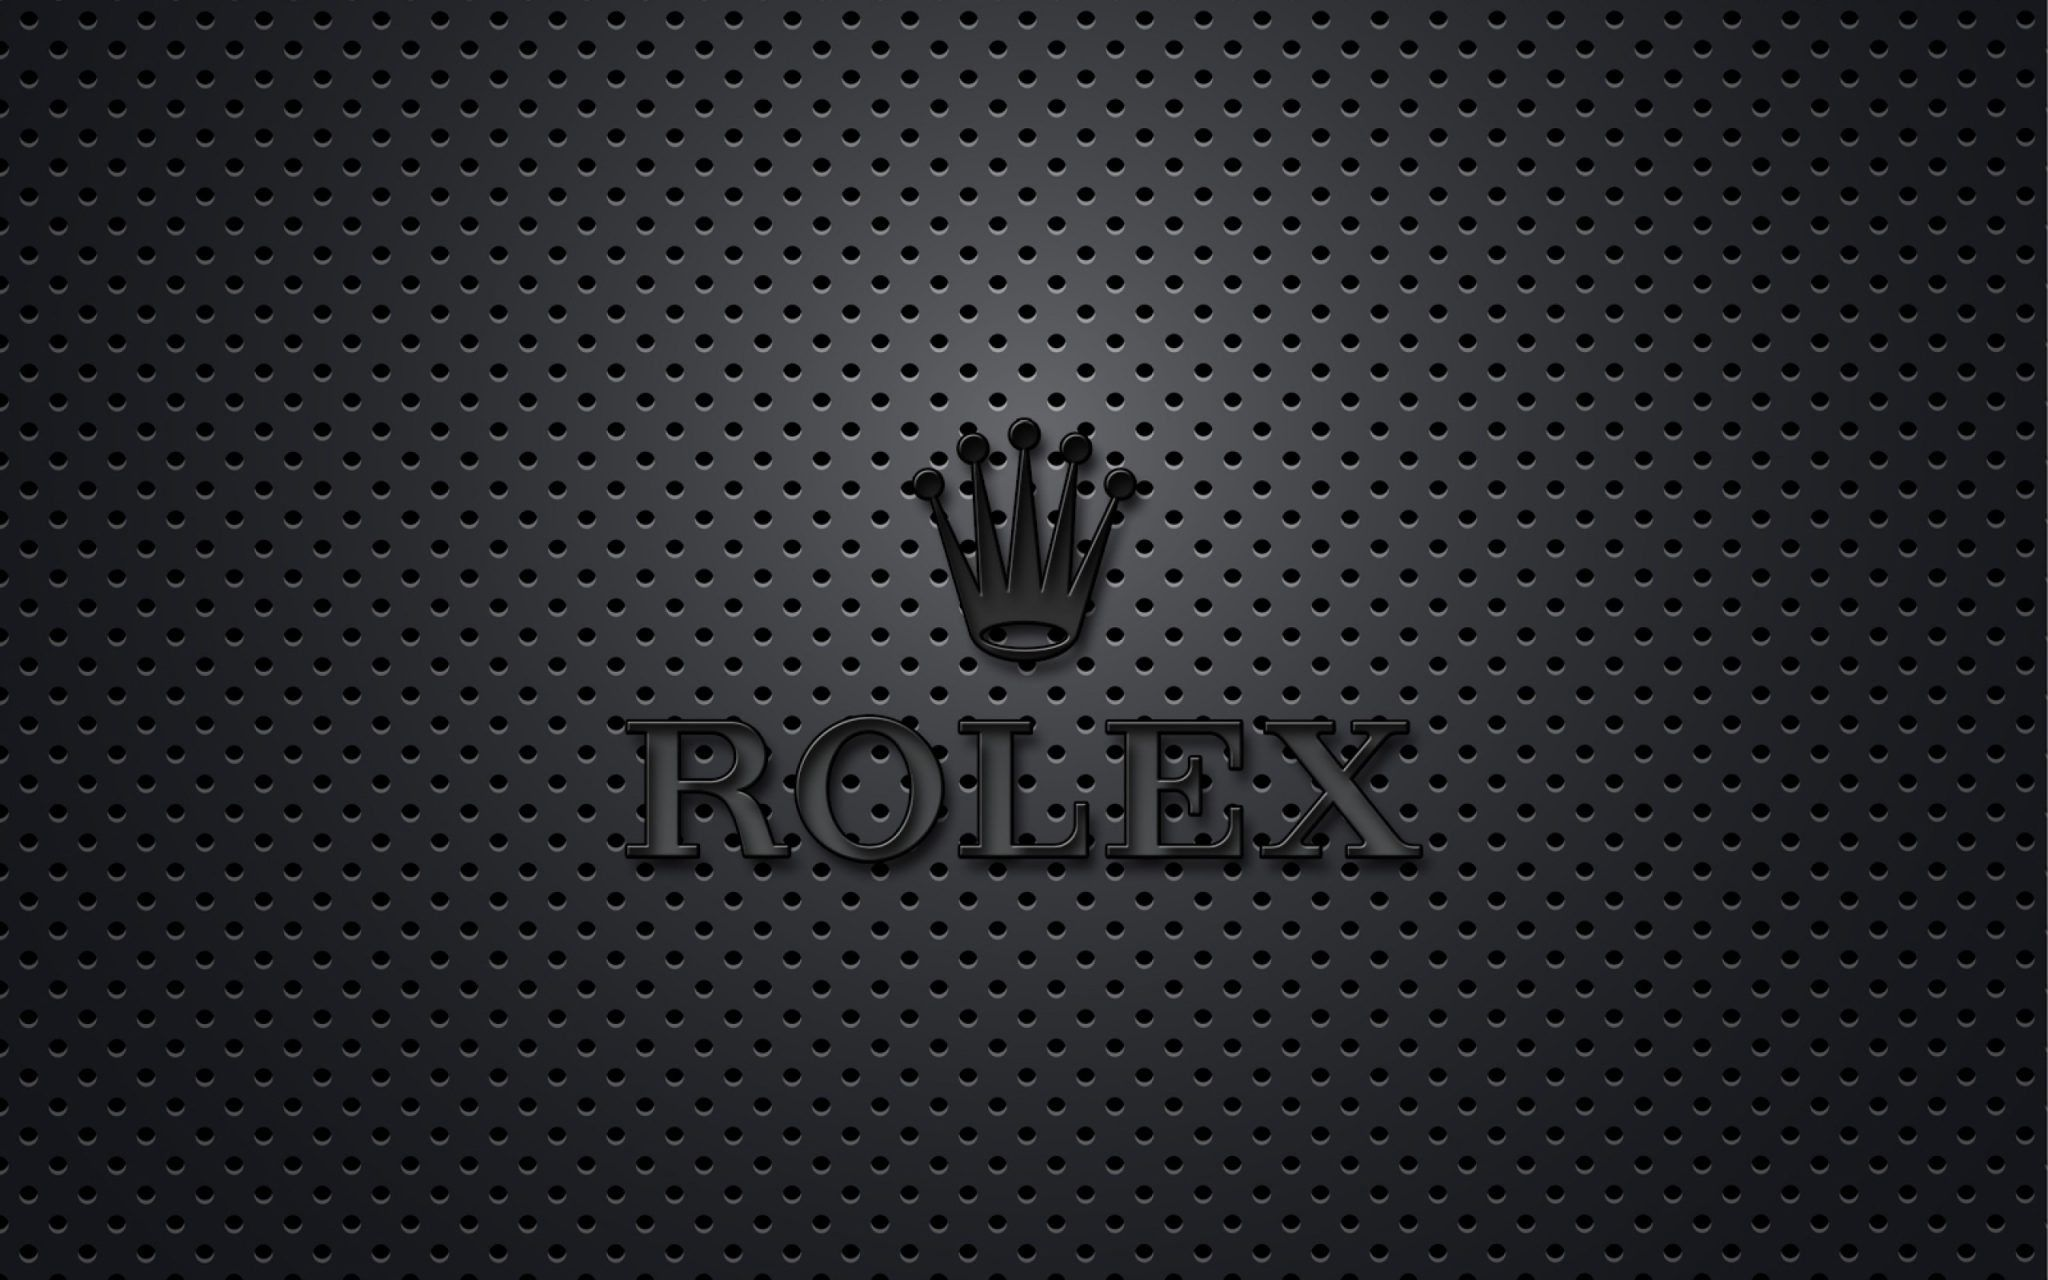 rolex crown wallpapers hd for desktop wallpaper background on other